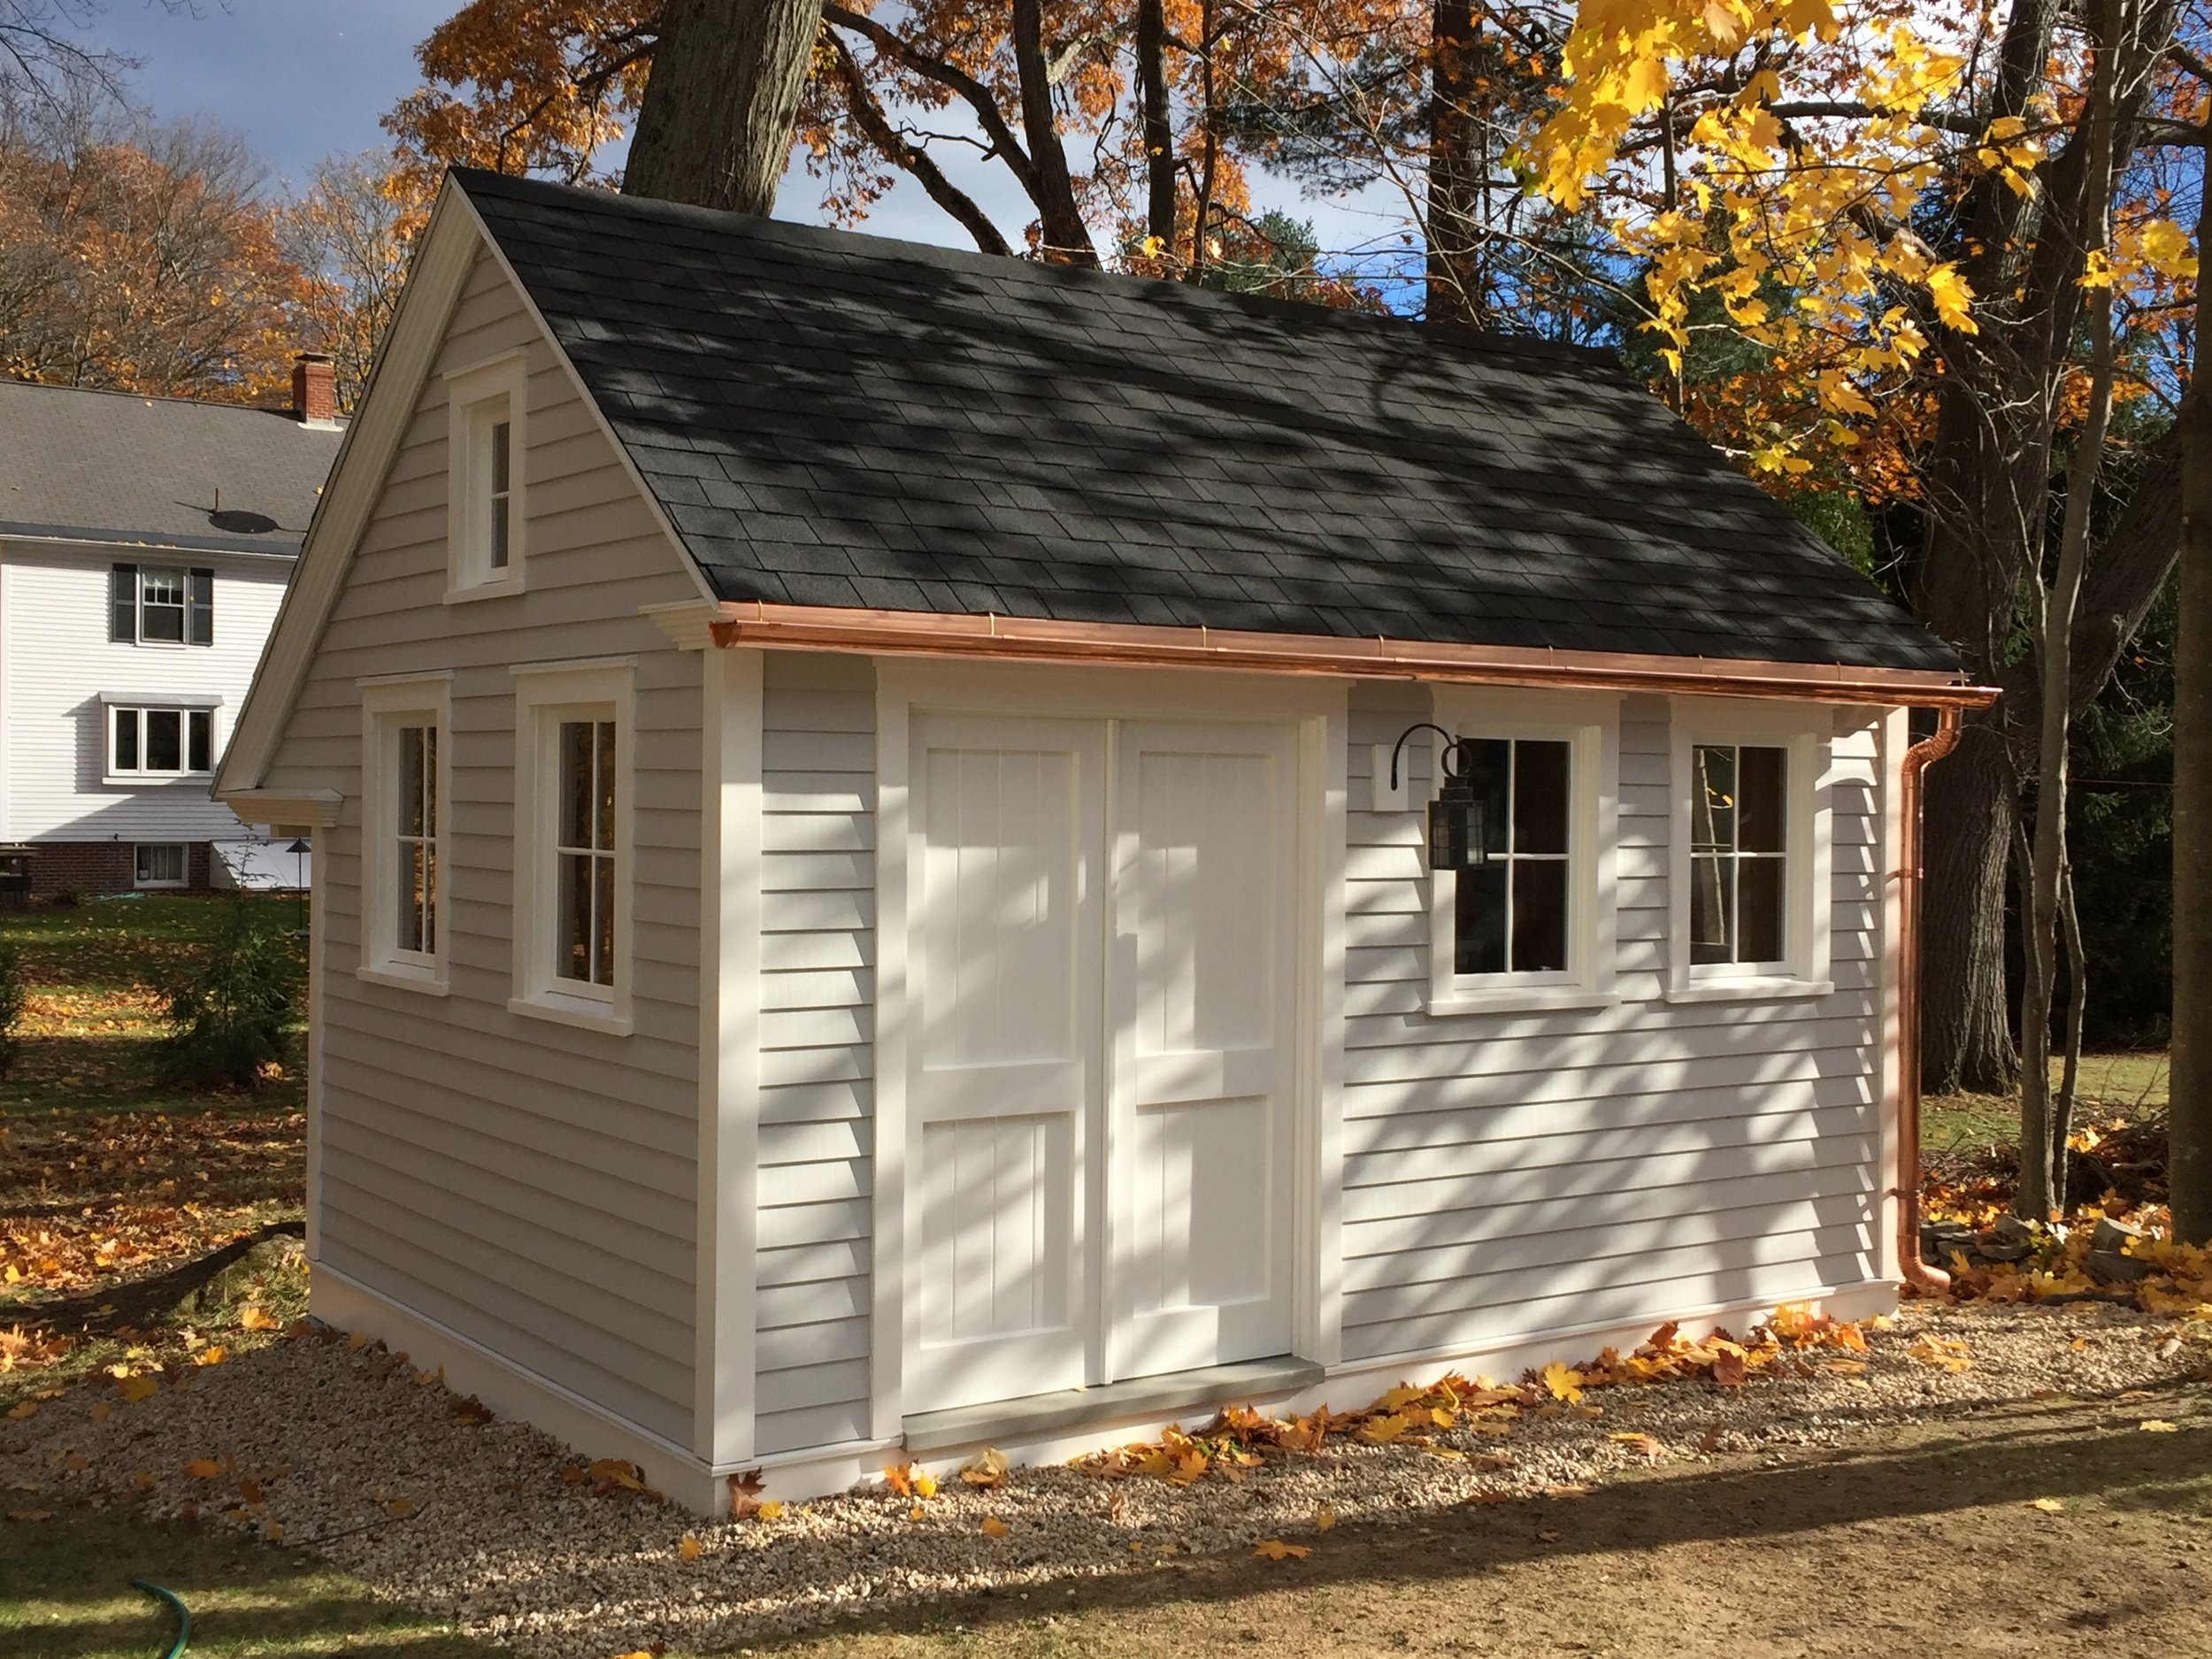 """New """"OLD"""" Garden Shed with Old Fashioned details - Custom Doors, 2 over 2 Boston sash and window frames, Classic eave returns, copper 1/2 round gutter and wood clapboards.    Maintenance free AZEK (PVC) rim band and cap @ grade."""